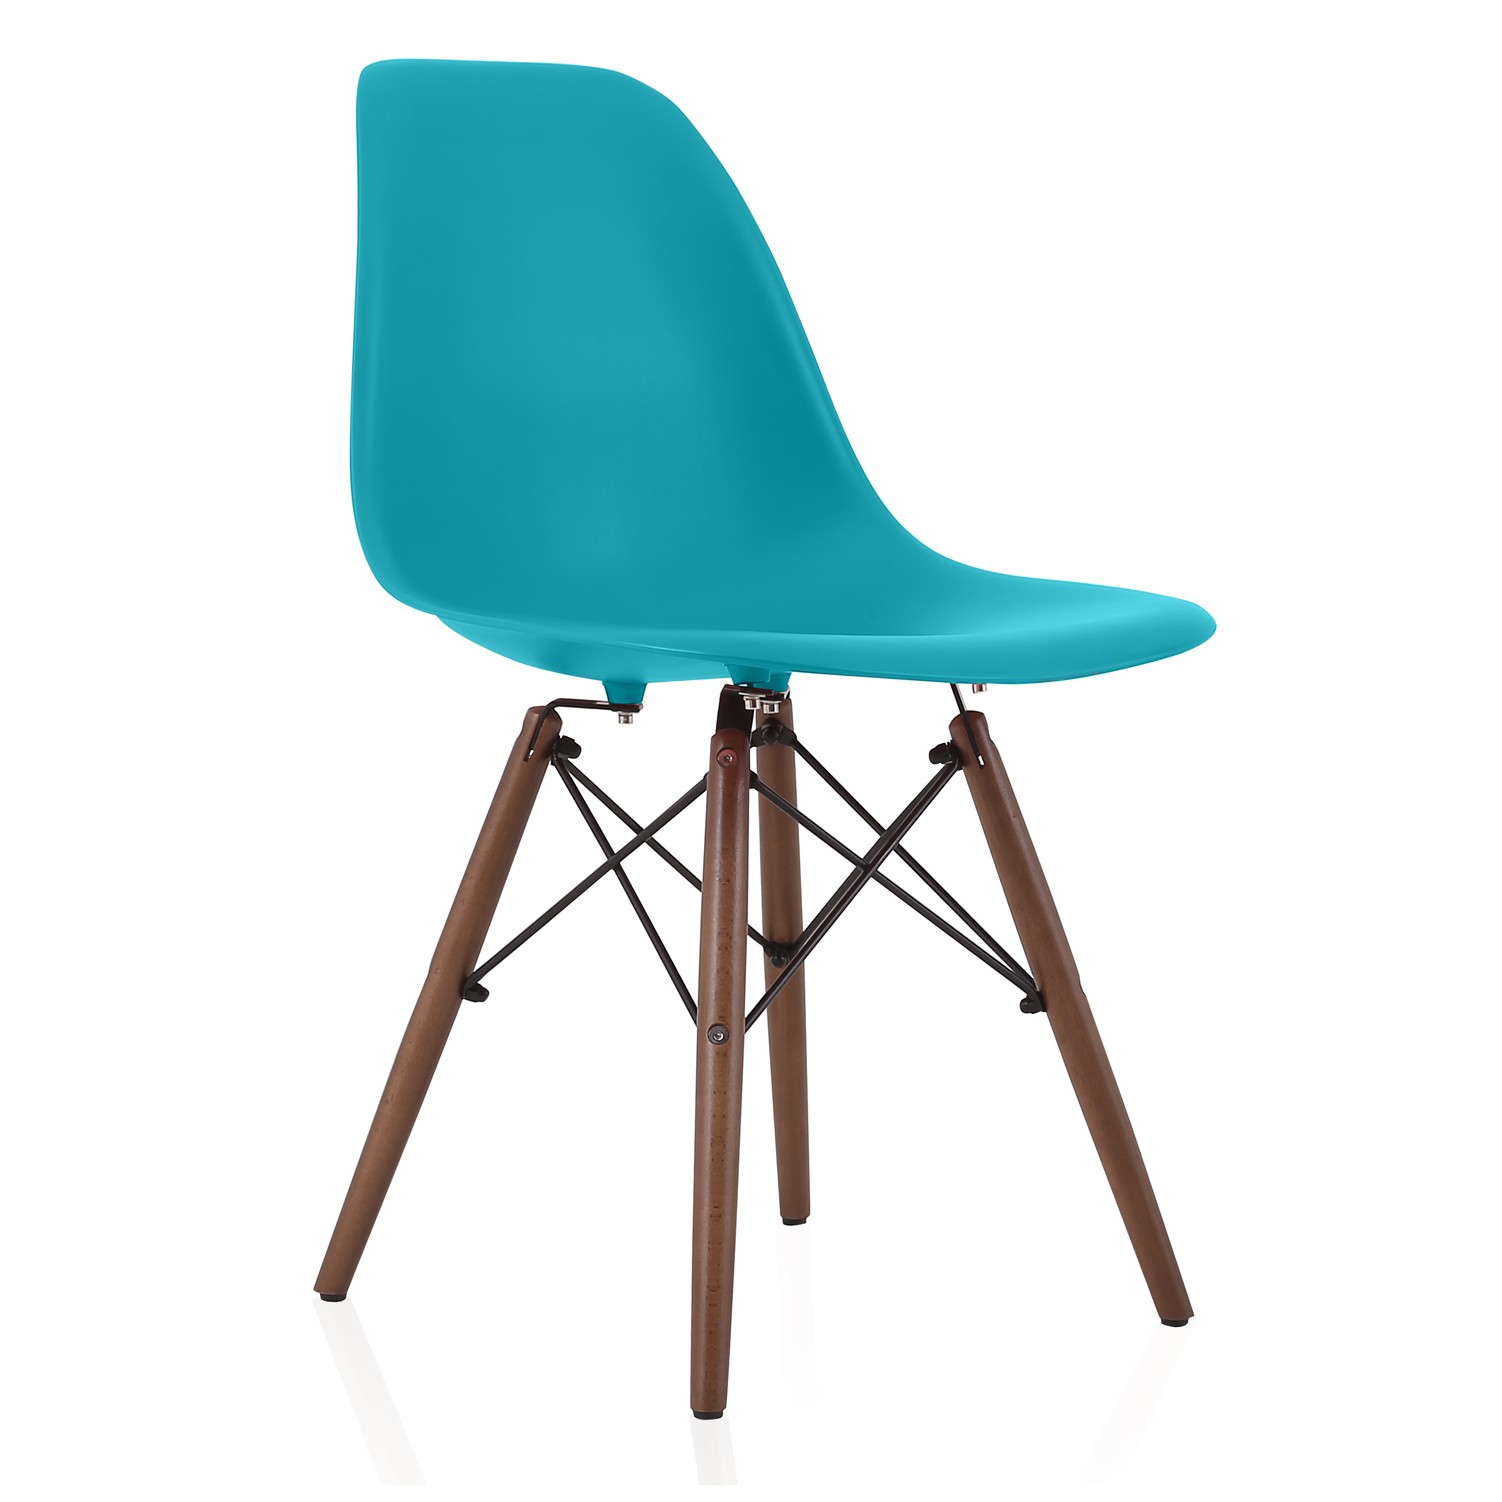 Plastic Dining Chairs Nature Series Teal Blue Eames Style Dsw Molded Plastic